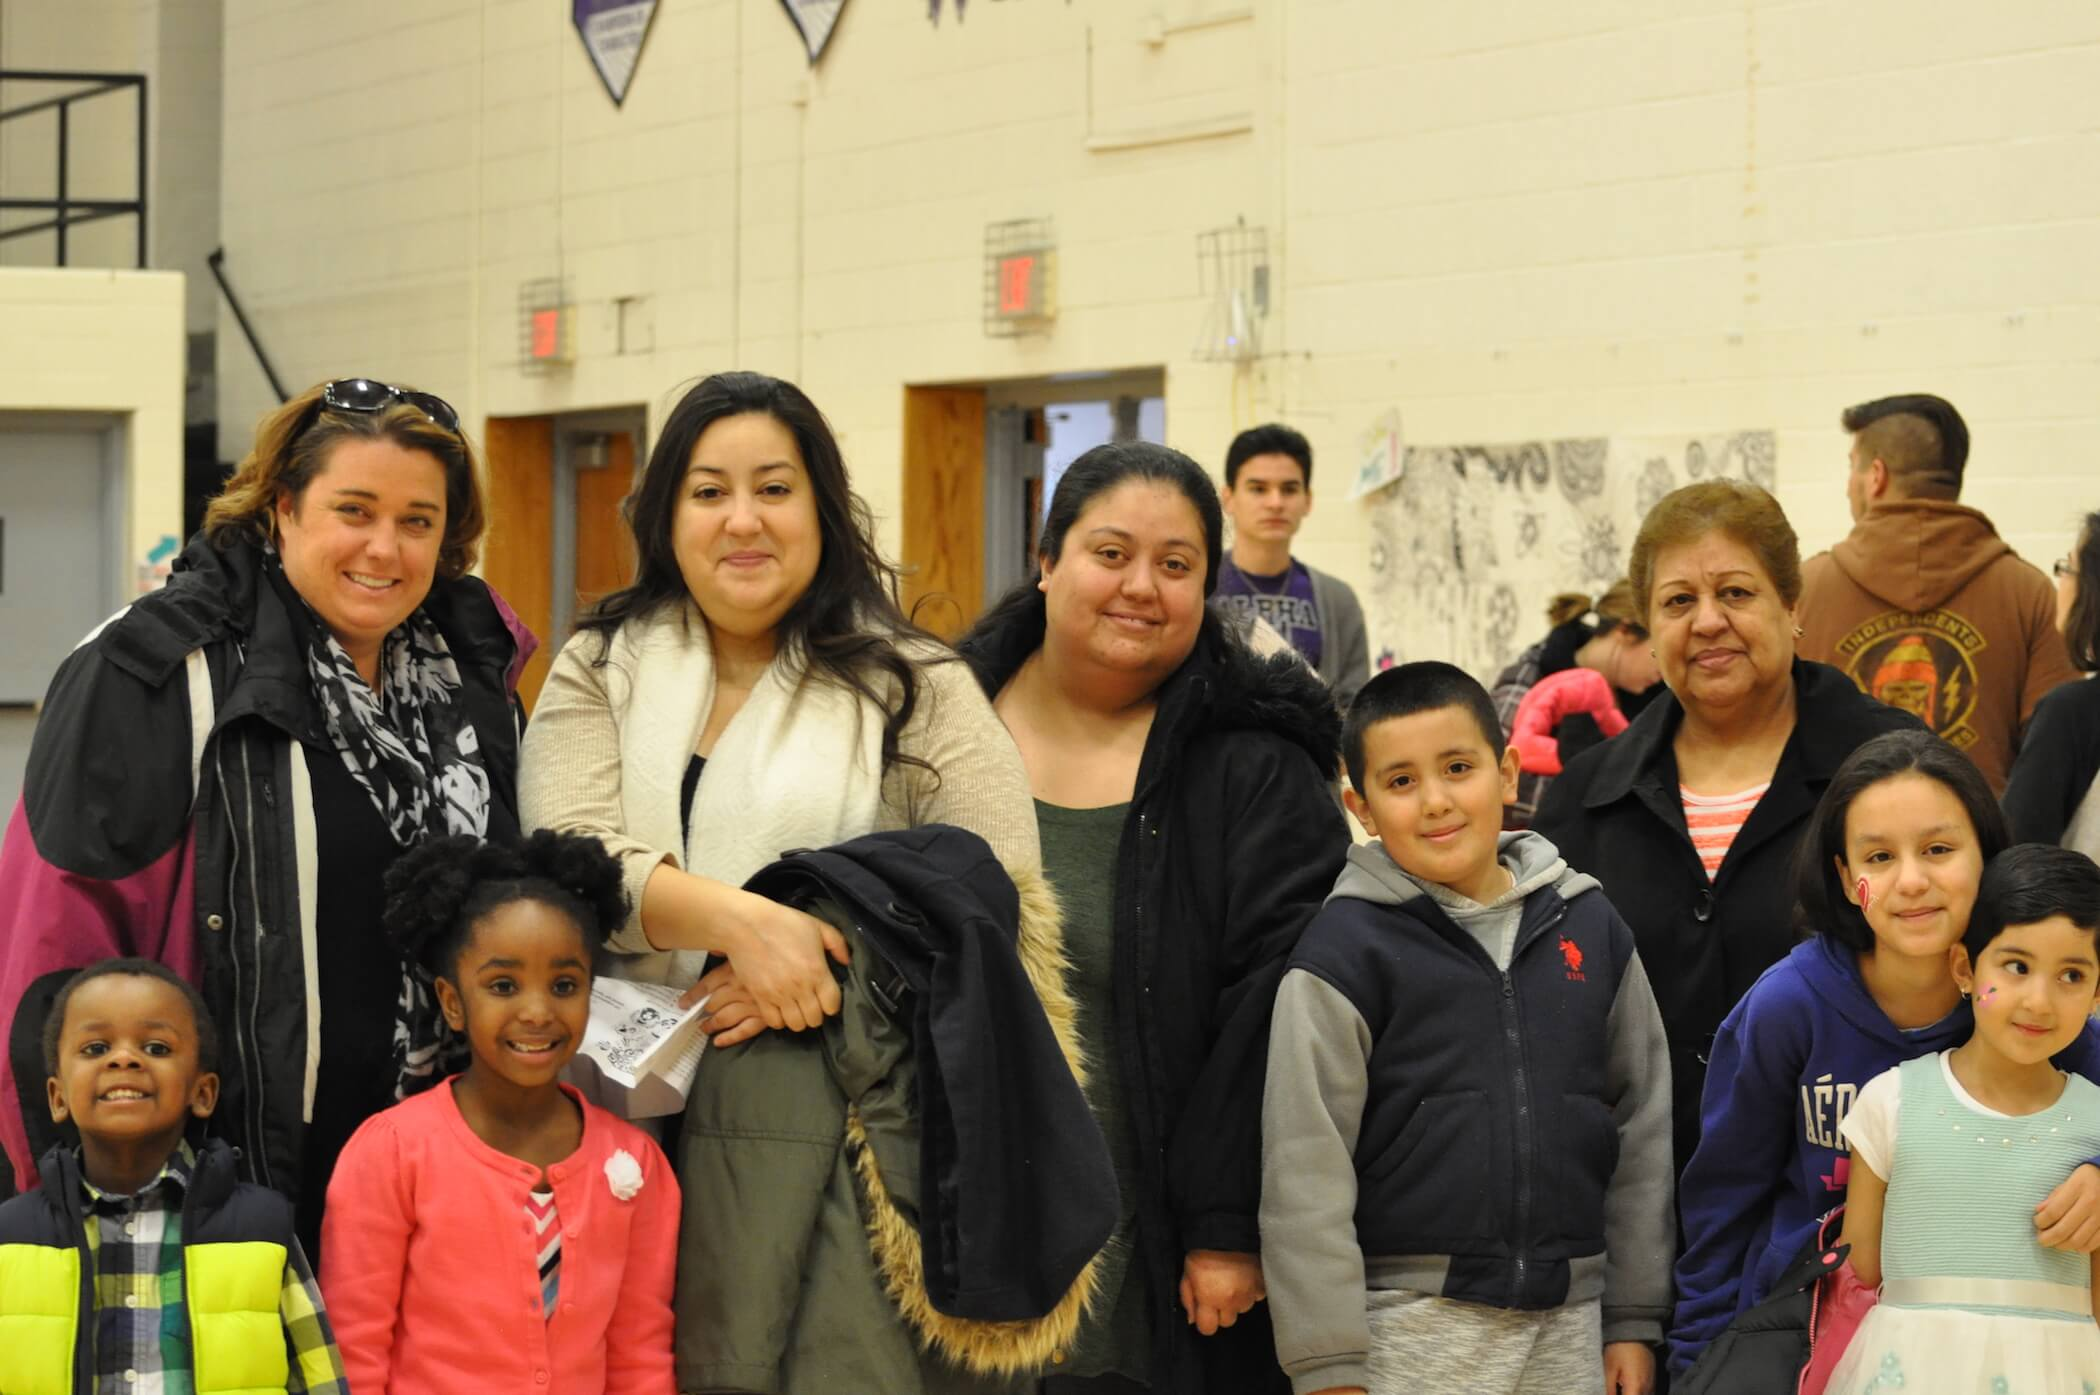 Photo of a student and their family inside a gymnasium.